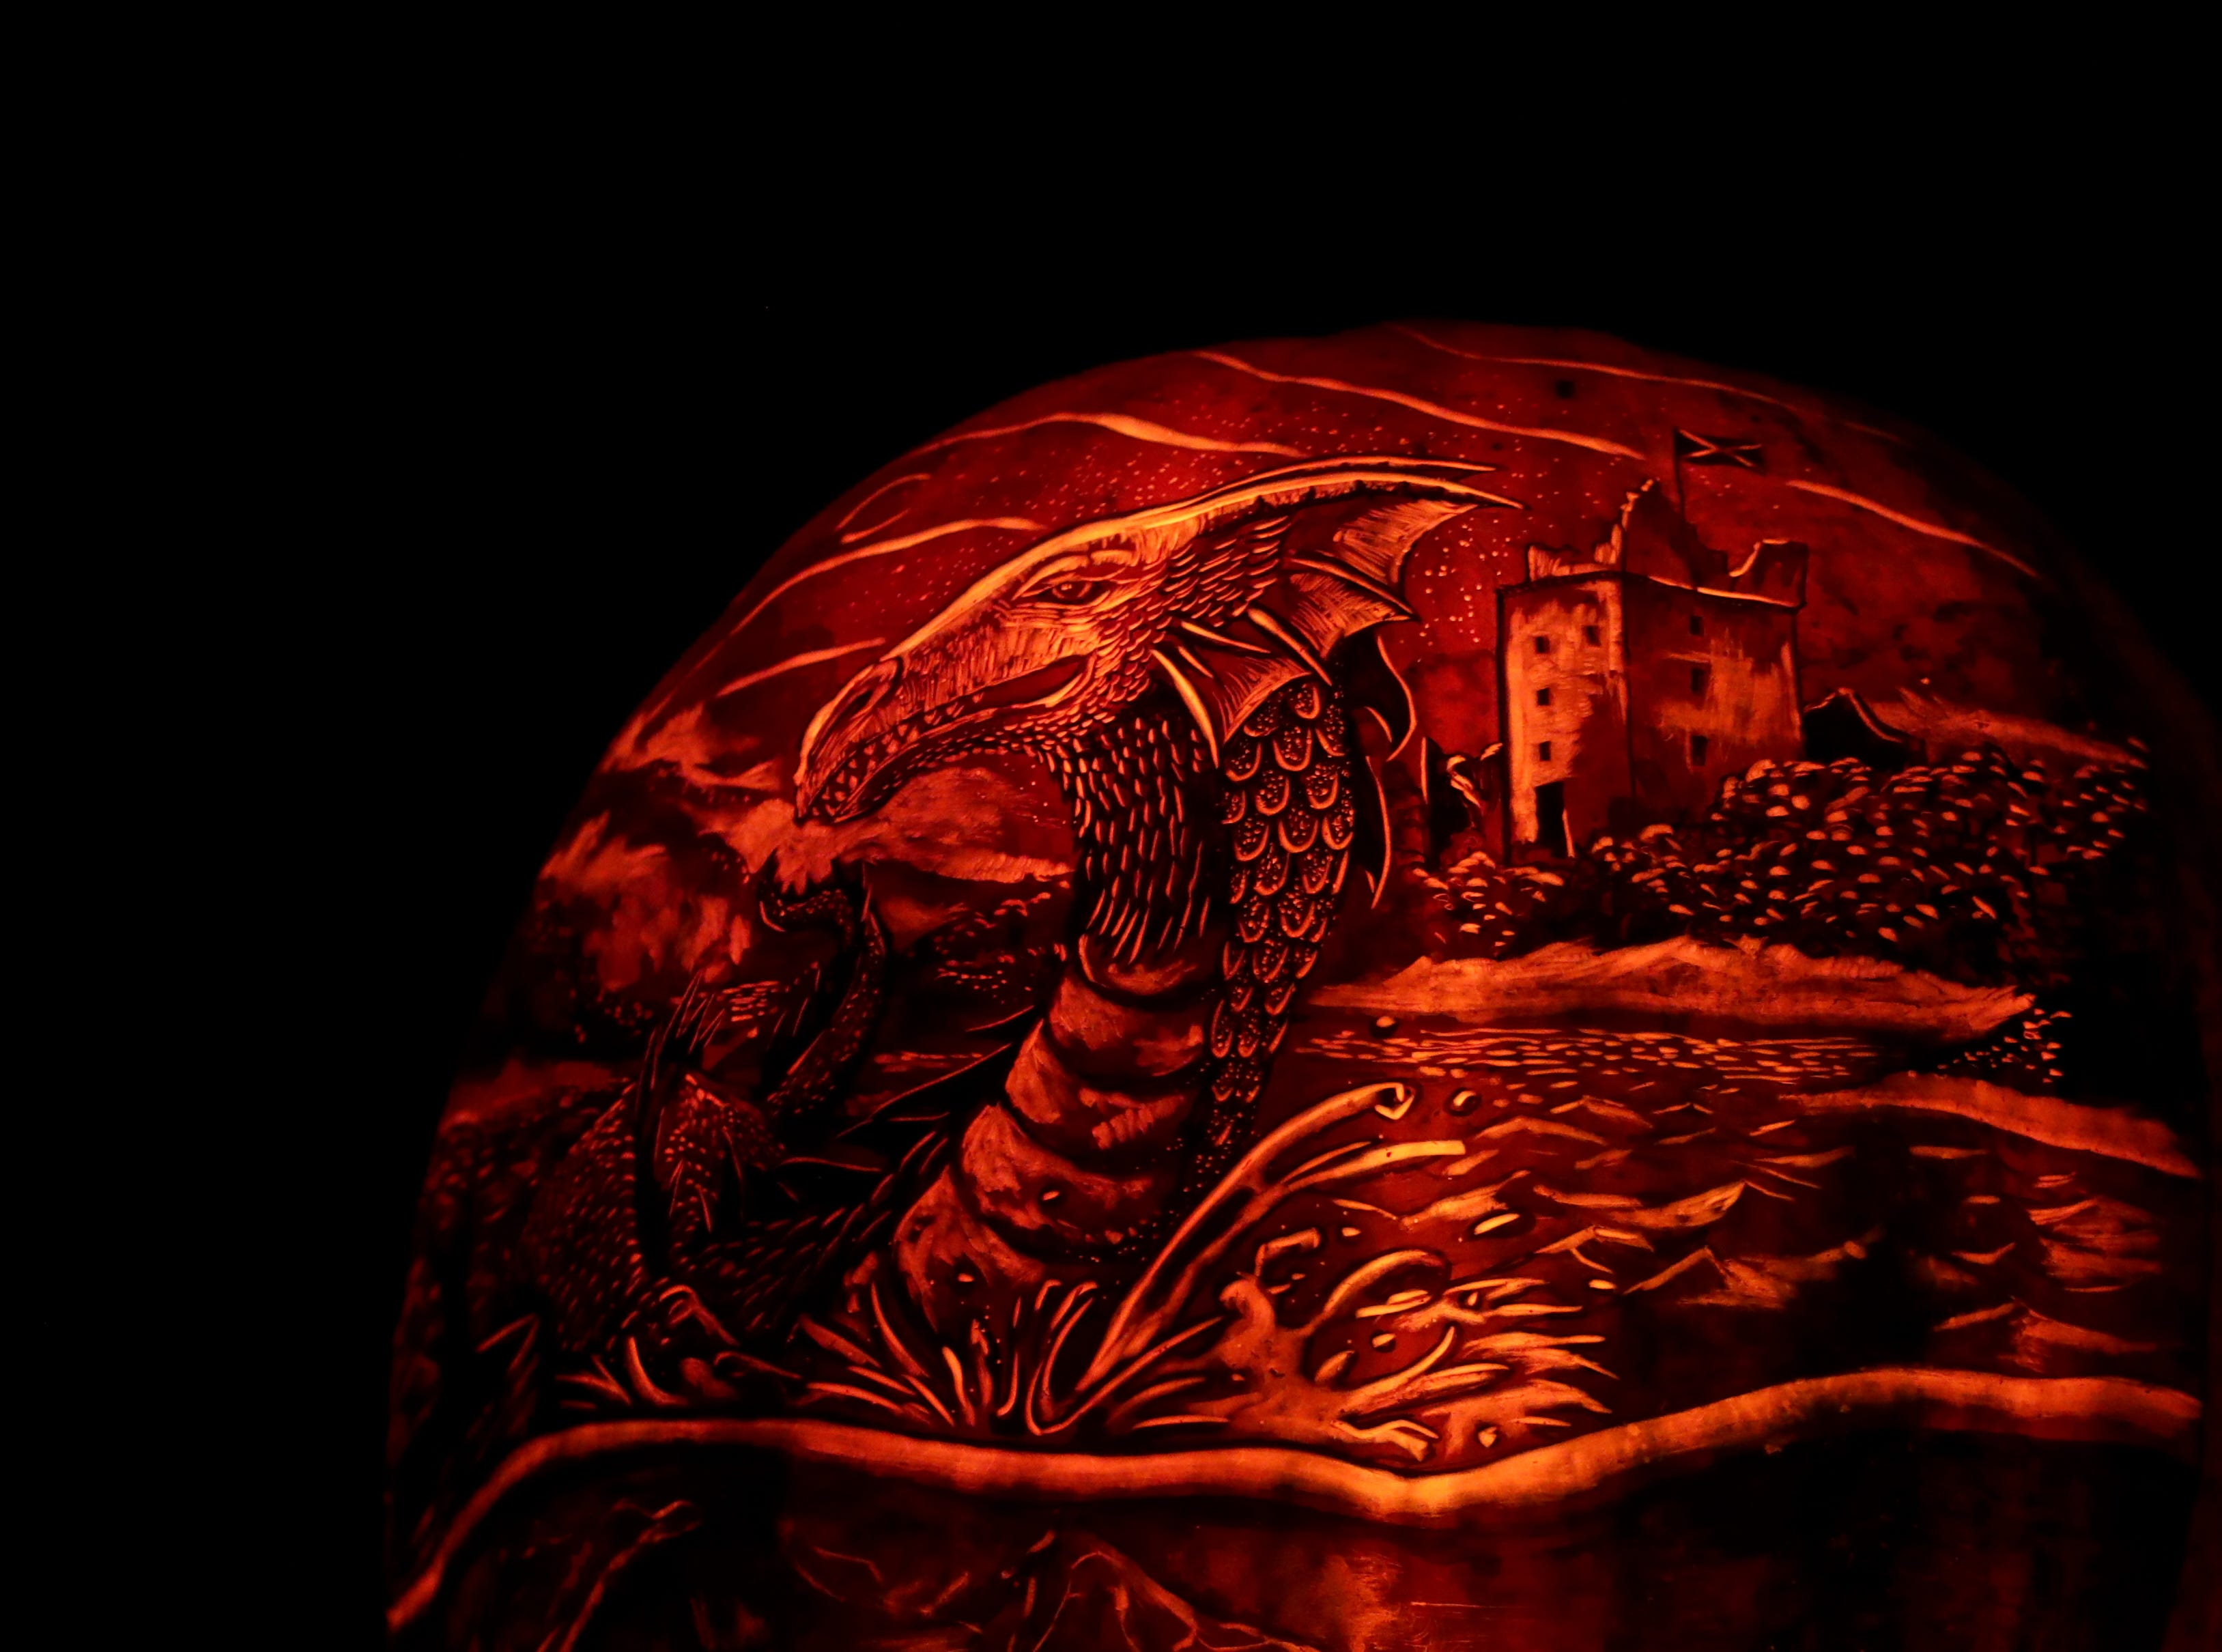 The Loch Ness Monster appears on a pumpkin at this year's Jack O' Lantern Spectacular. Oct. 9, 2018